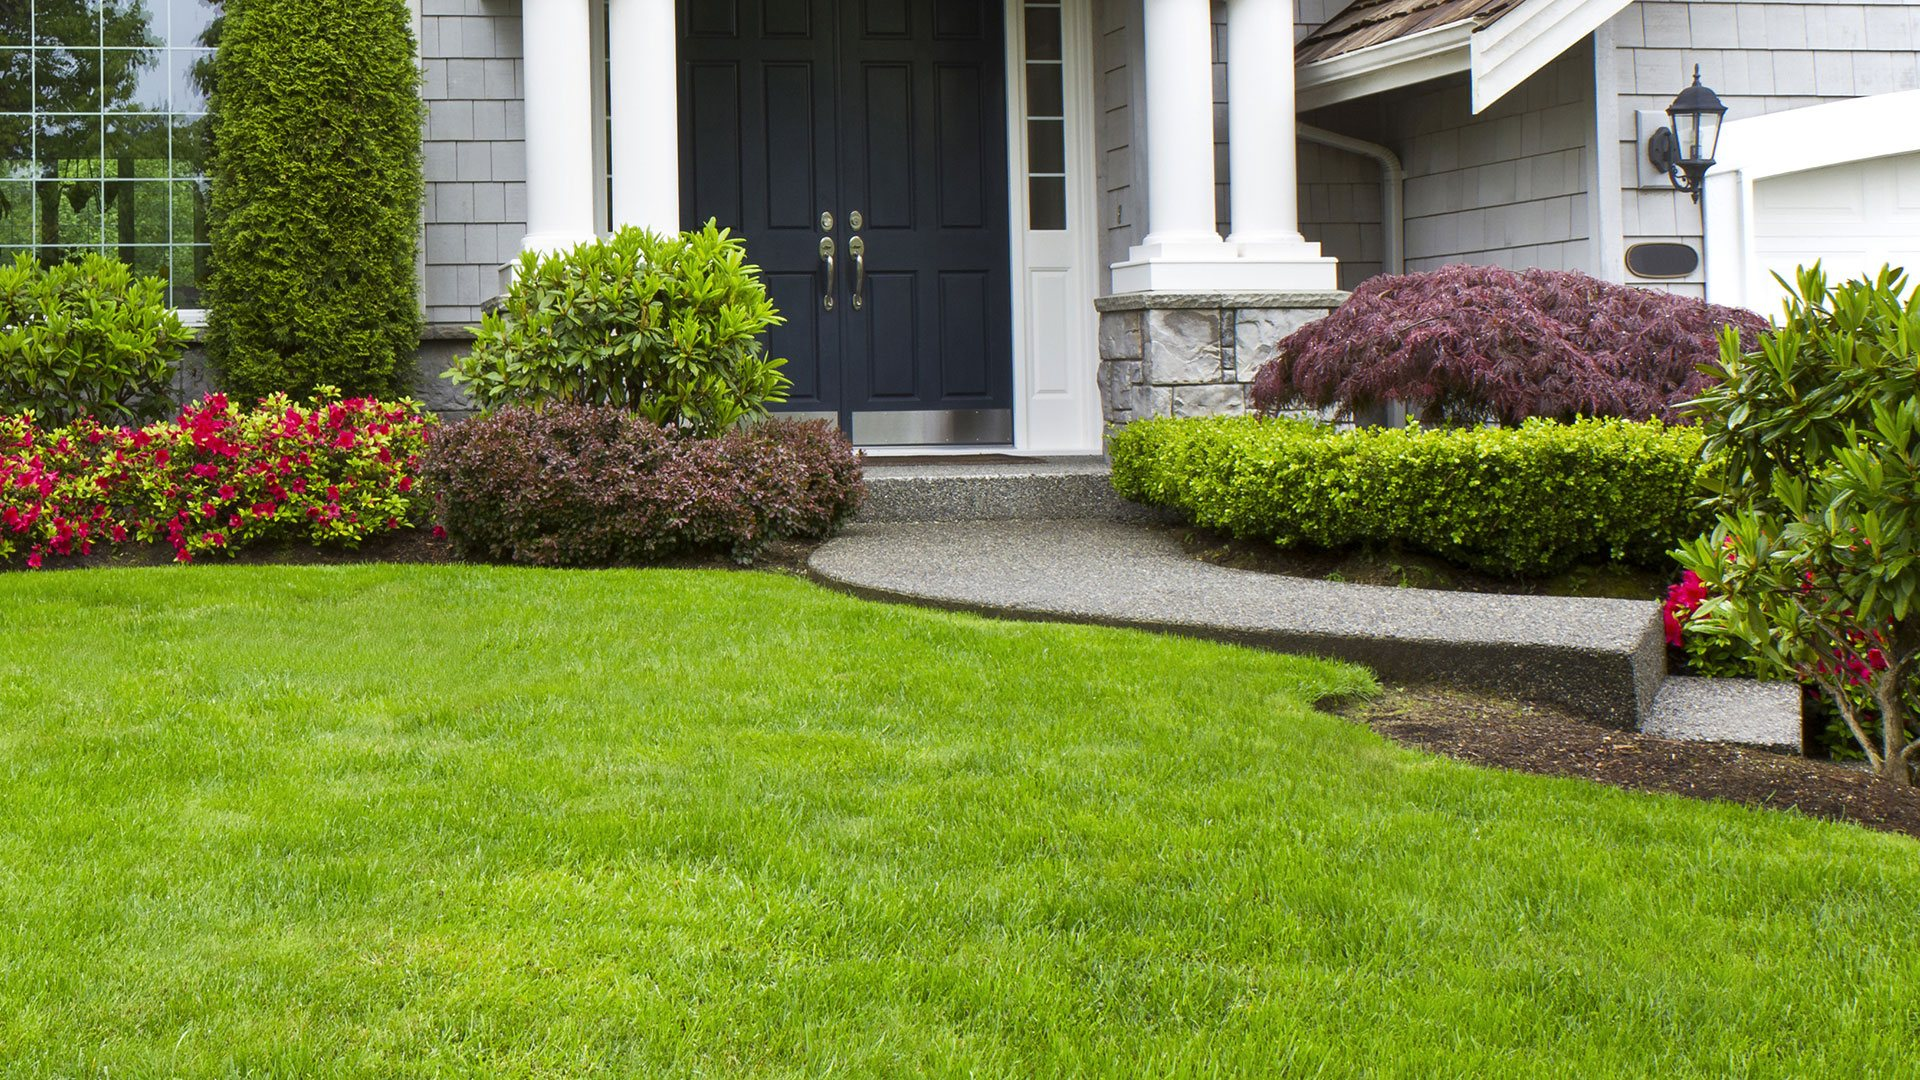 Home pittsburgh garden design lawn maintenance and for Landscape garden maintenance